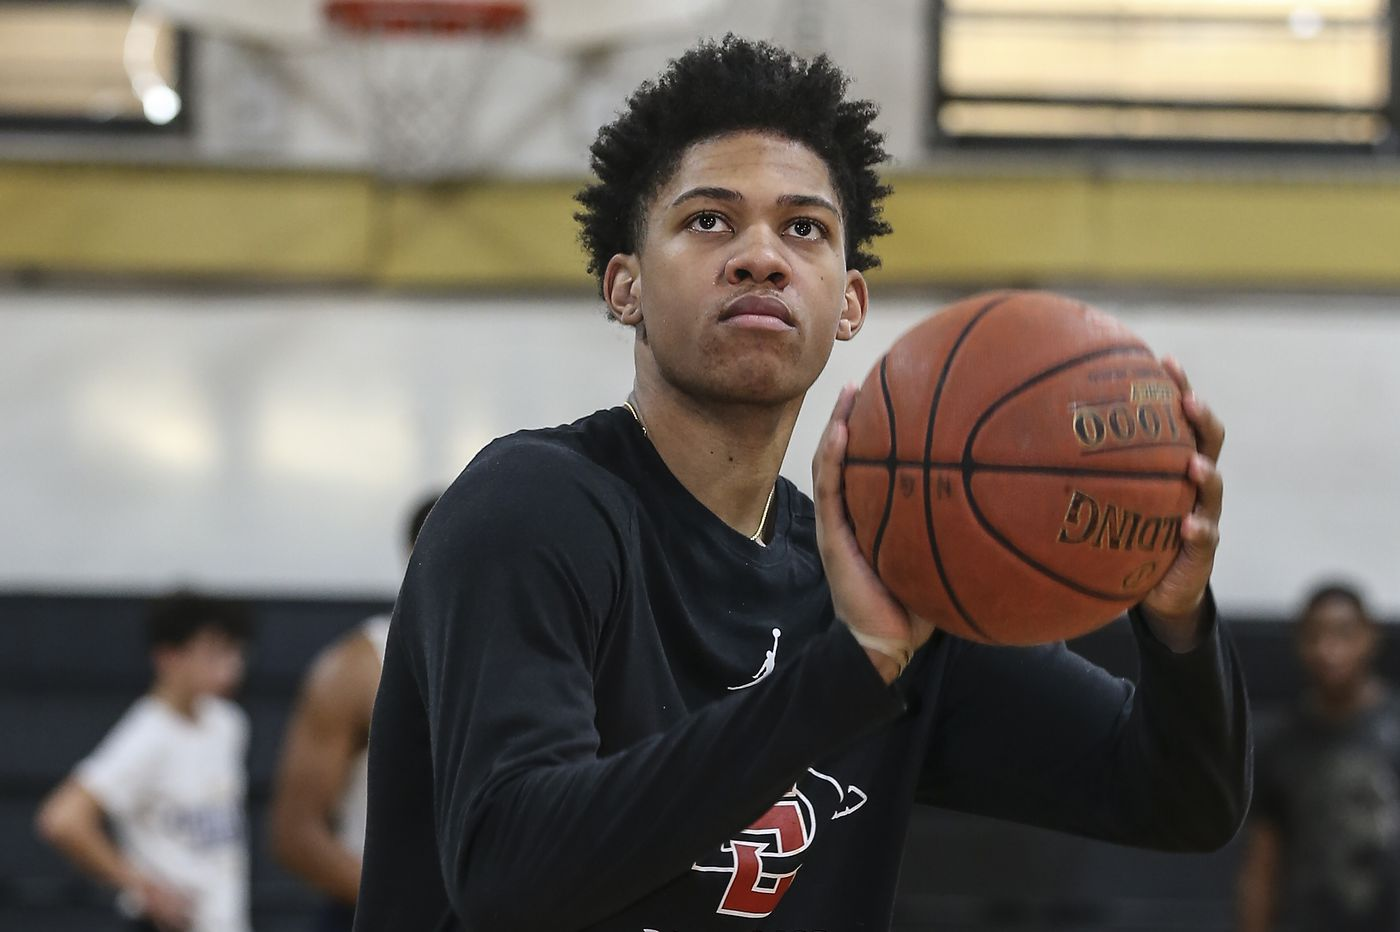 Basketball recruiting: Che' Evans wants Catholic League title with Neumann Goretti before joining San Diego State